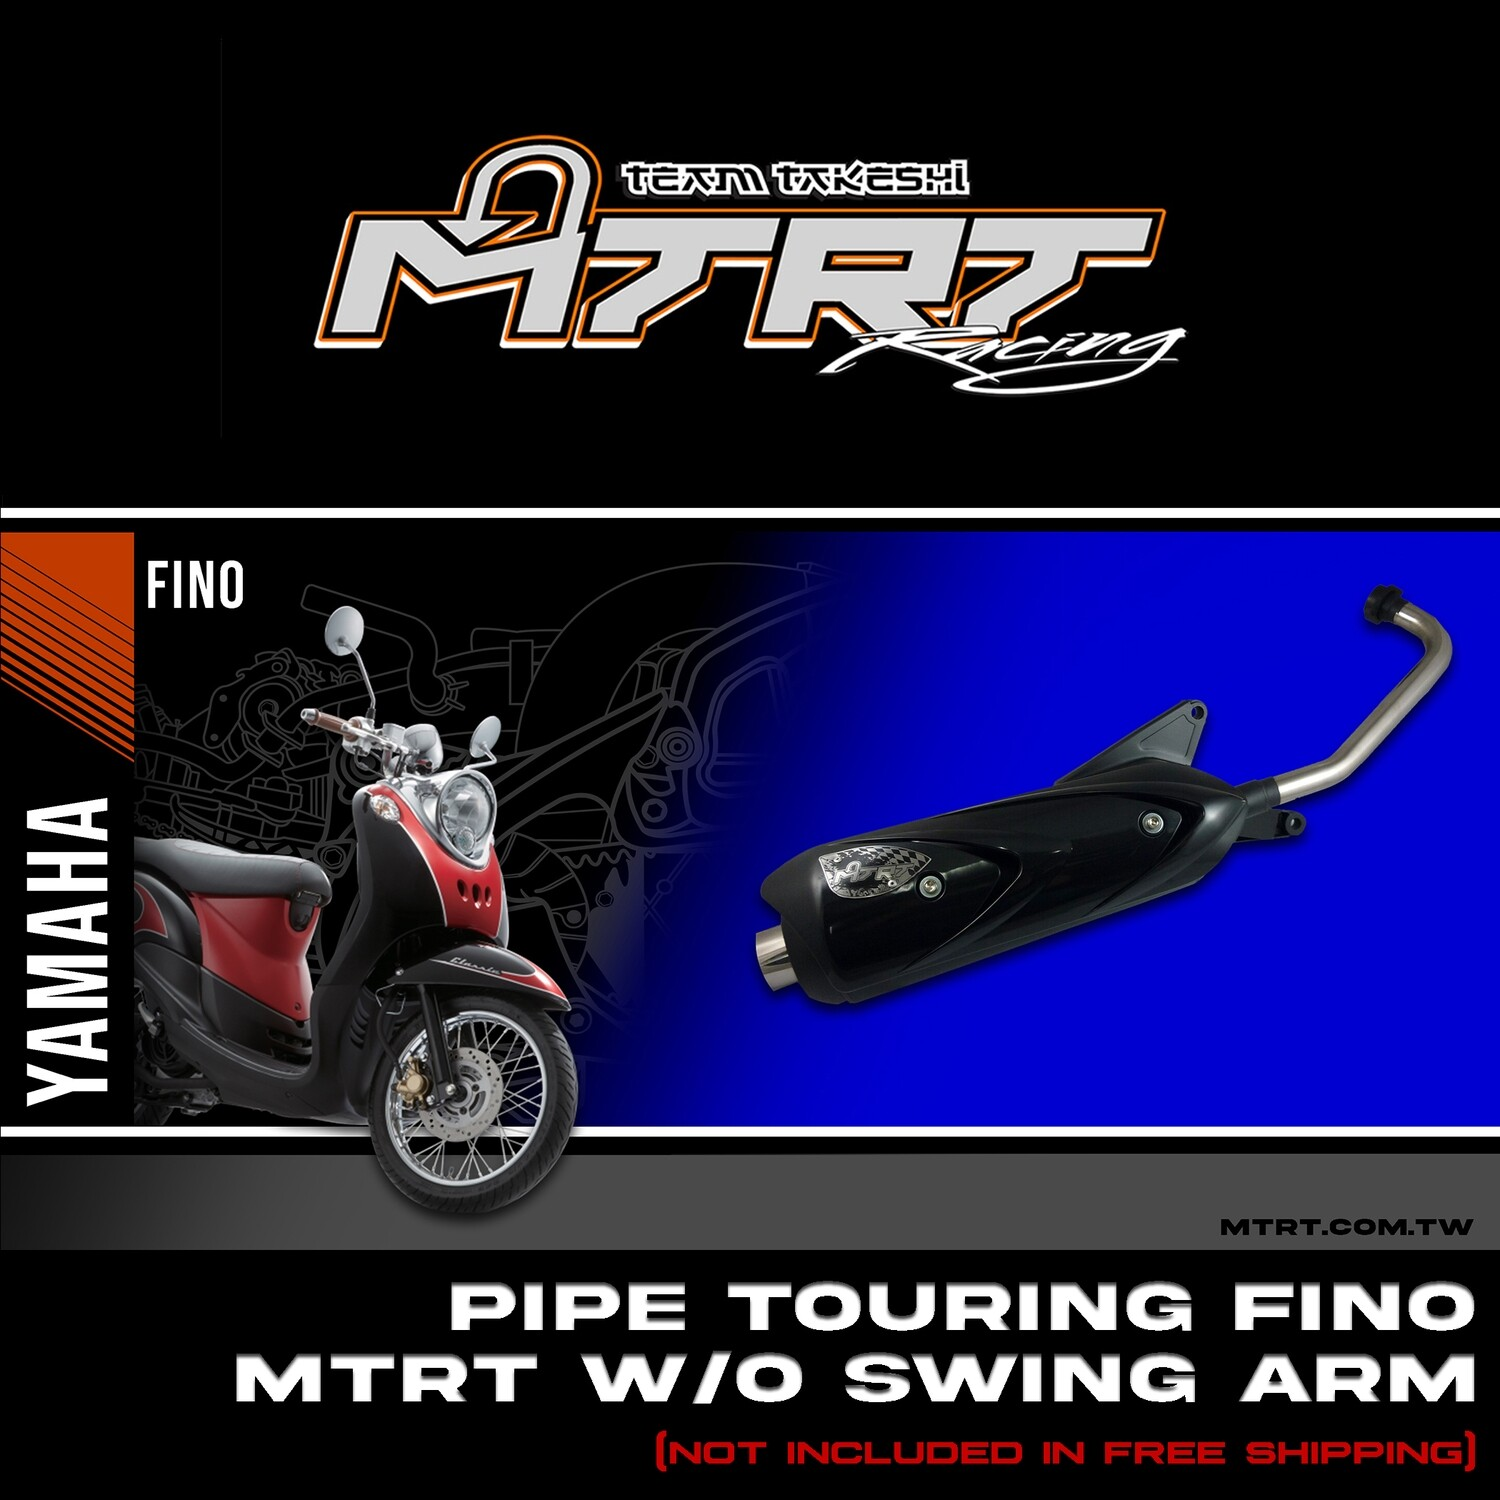 PIPE FOR TOURING FINO MTRT W/O SWING ARM